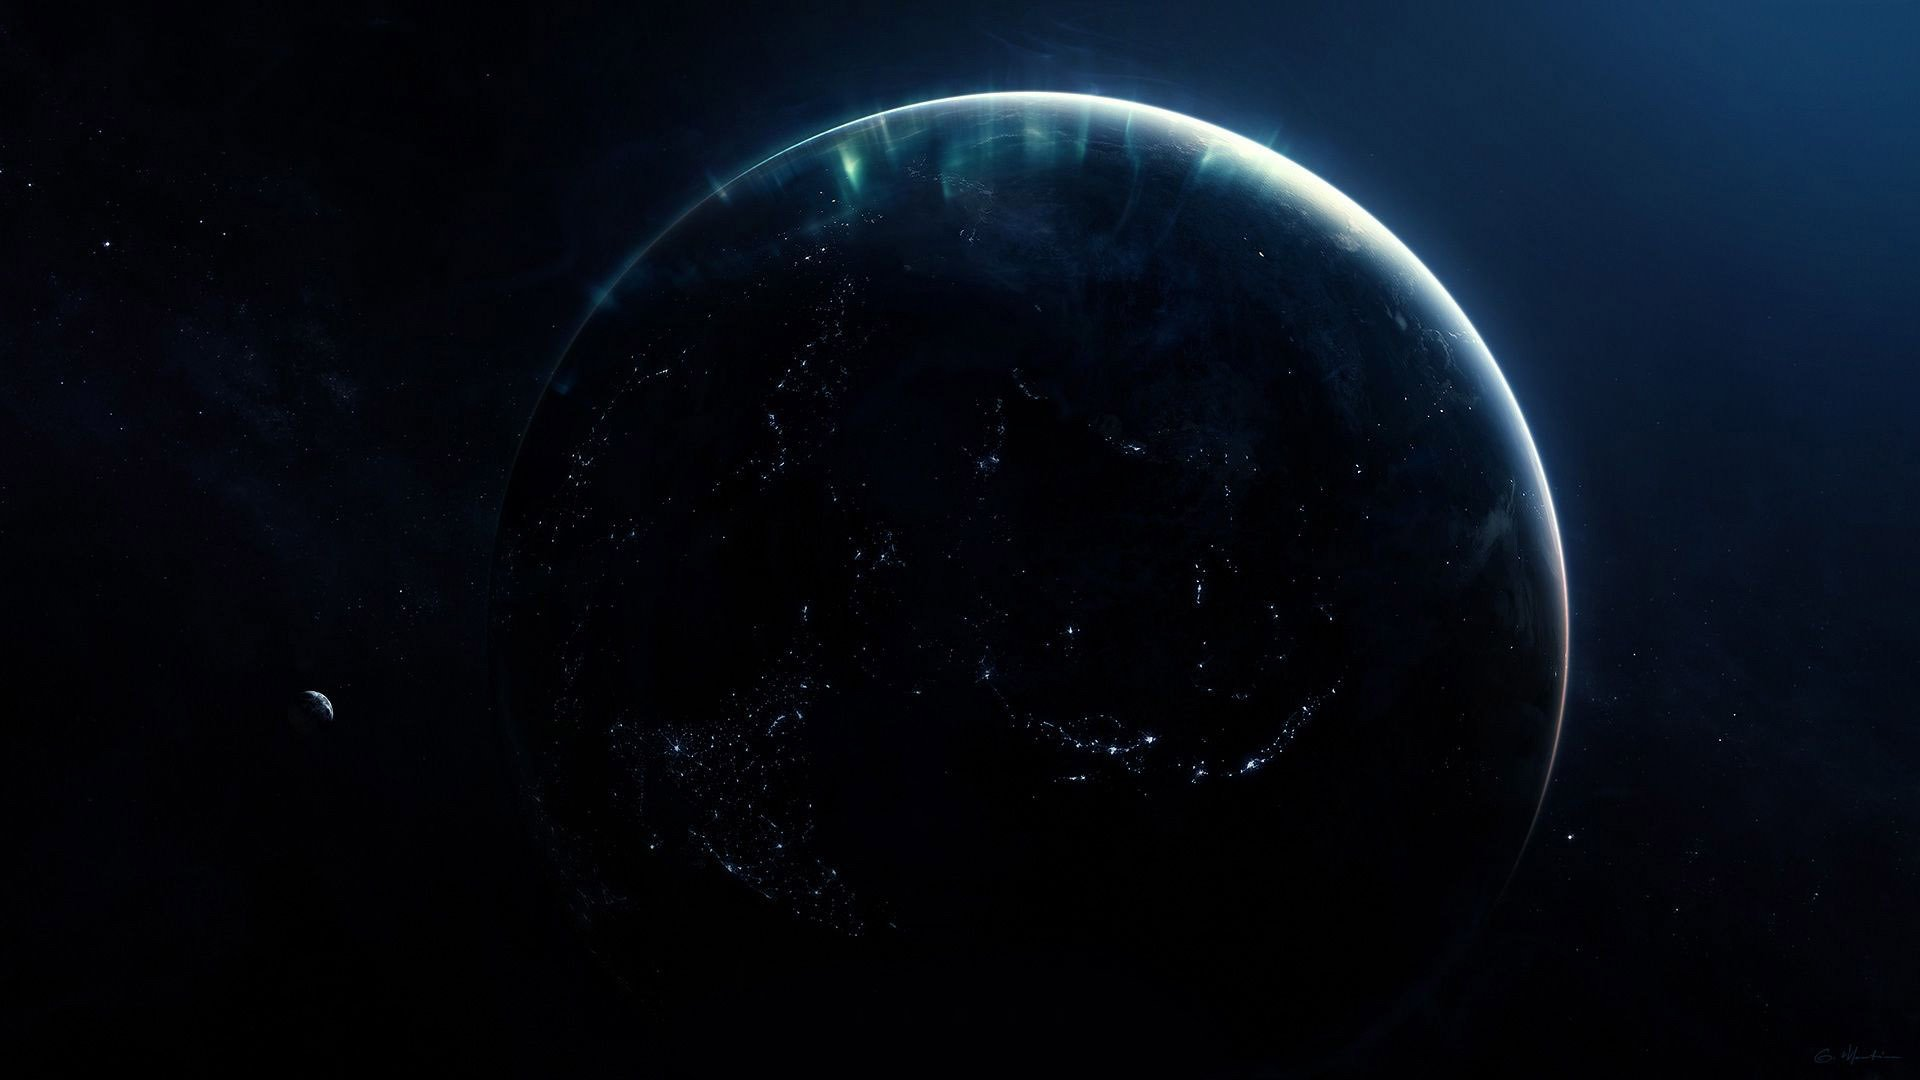 Planet Earth at night Wallpaper 3512 1920x1080